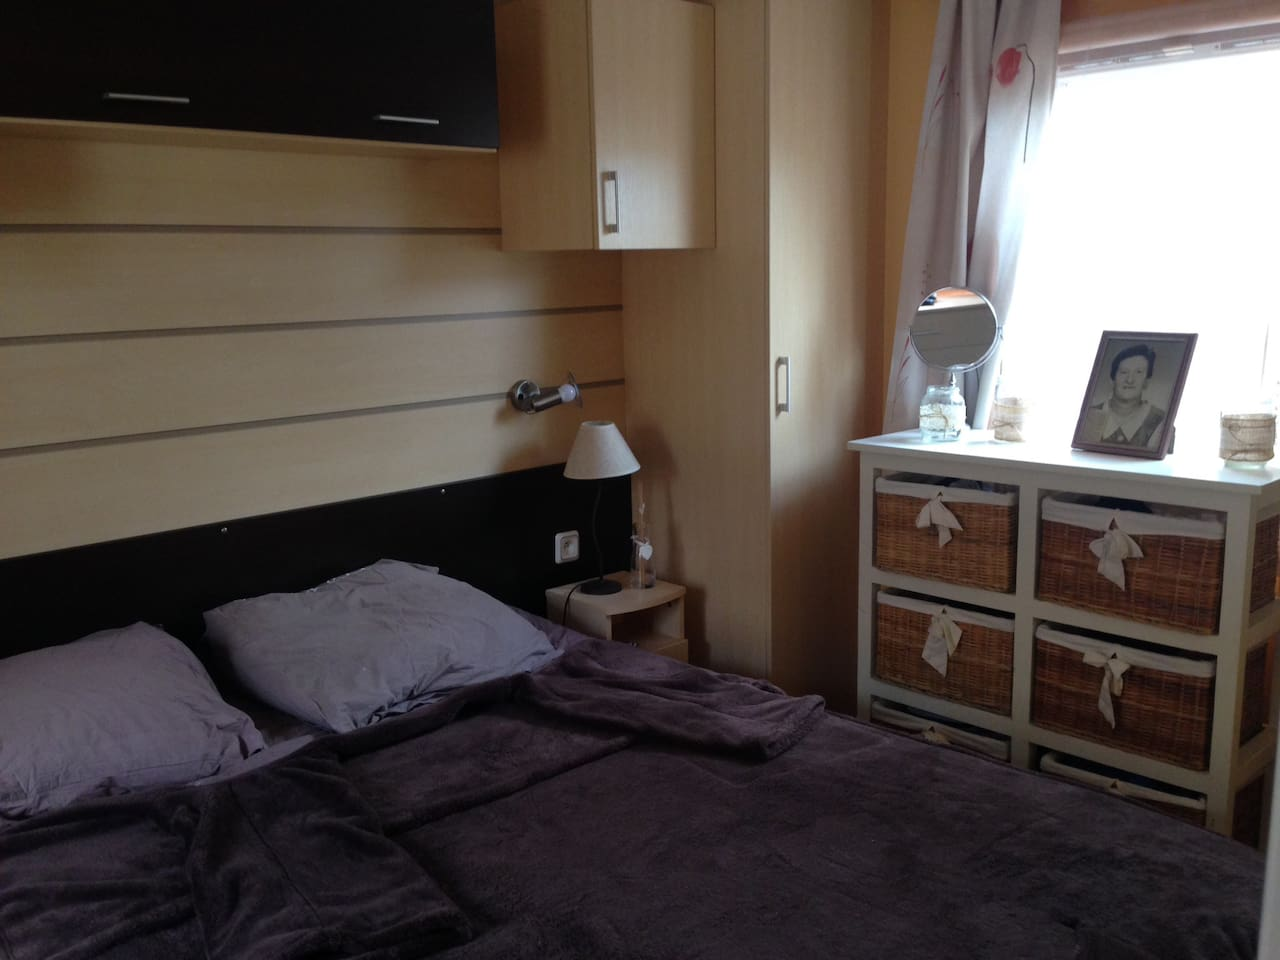 Location  mobilhome Camping la Pinede 6 couchages